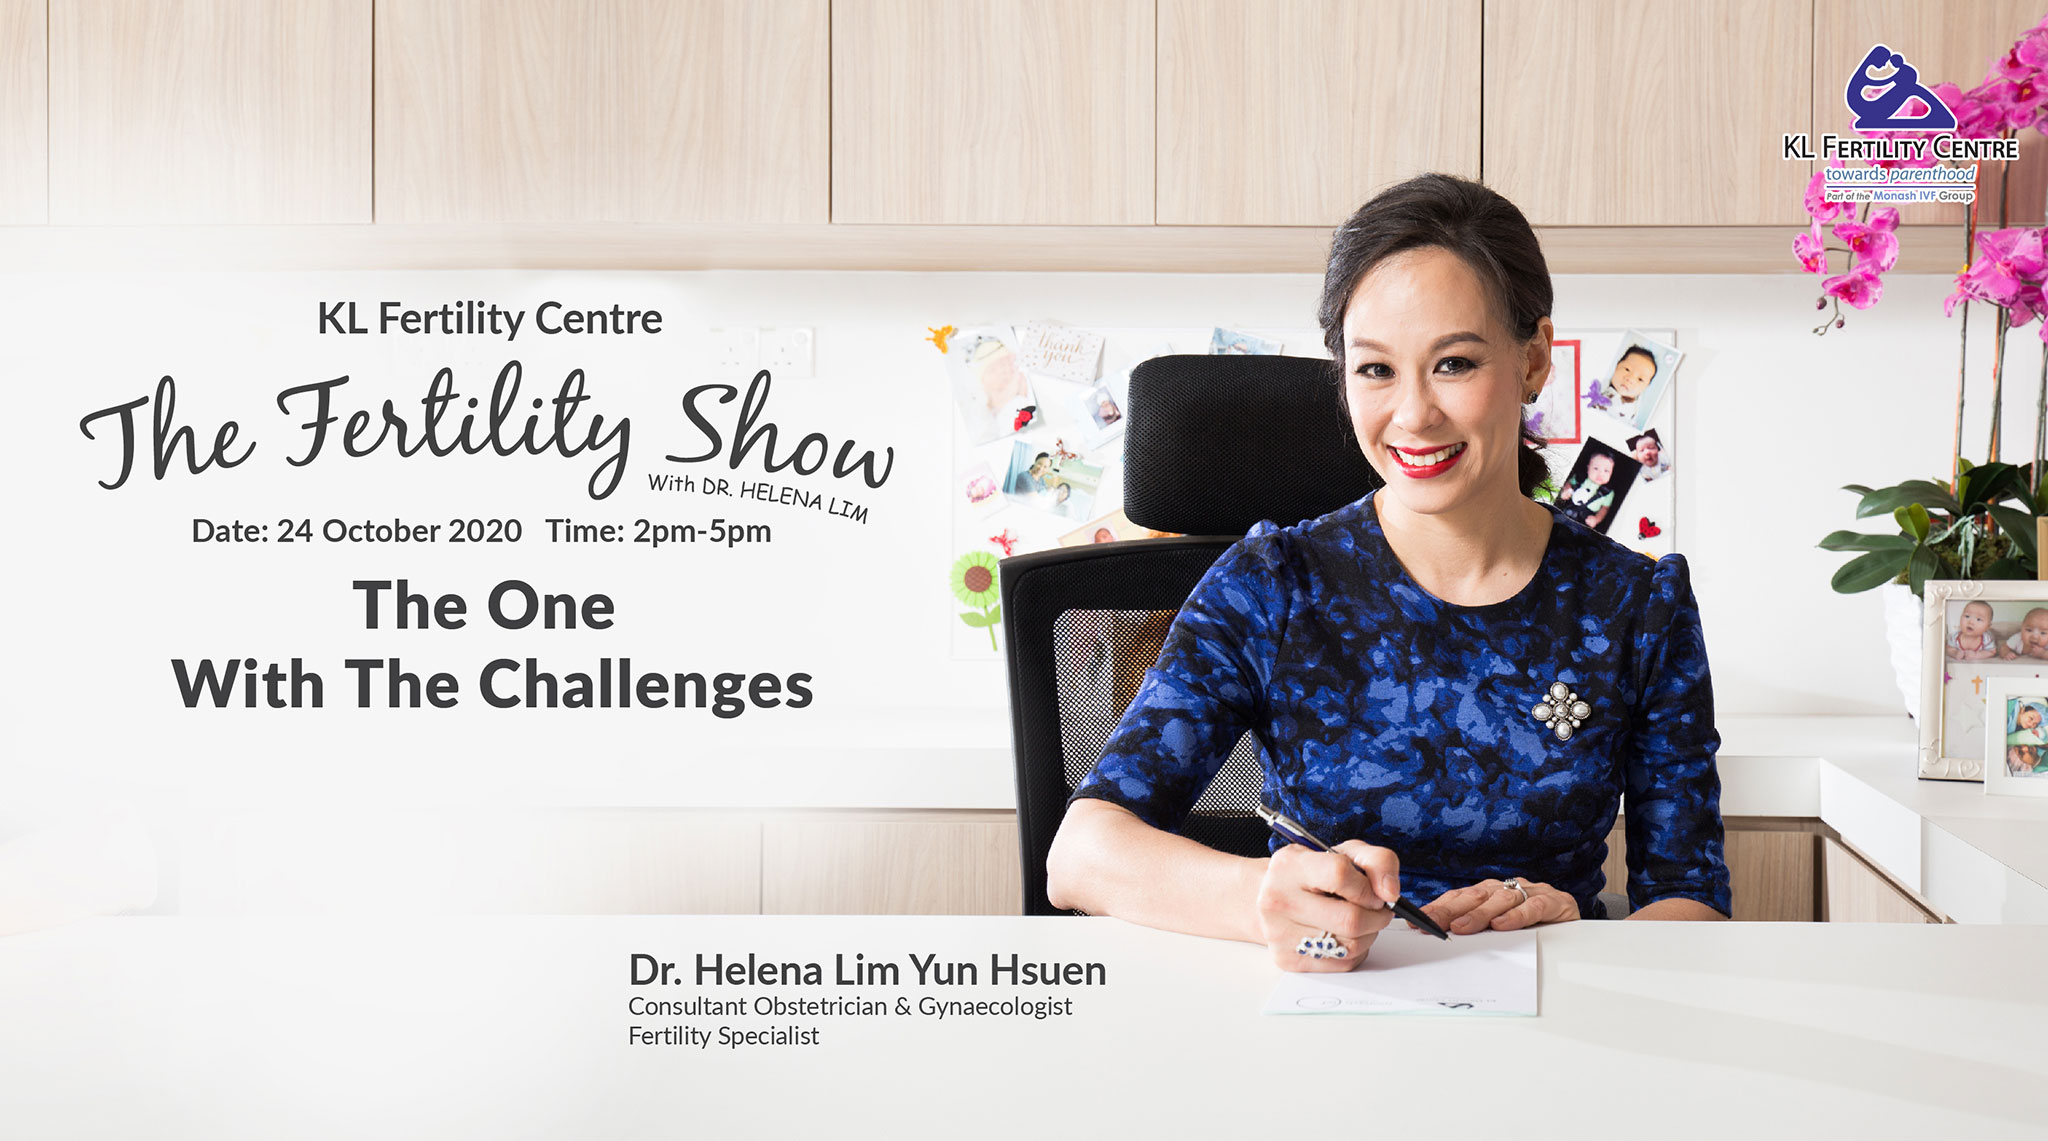 The Fertility Show : The One With The Challenges, 24 October 2020 - Dr. Helena Lim